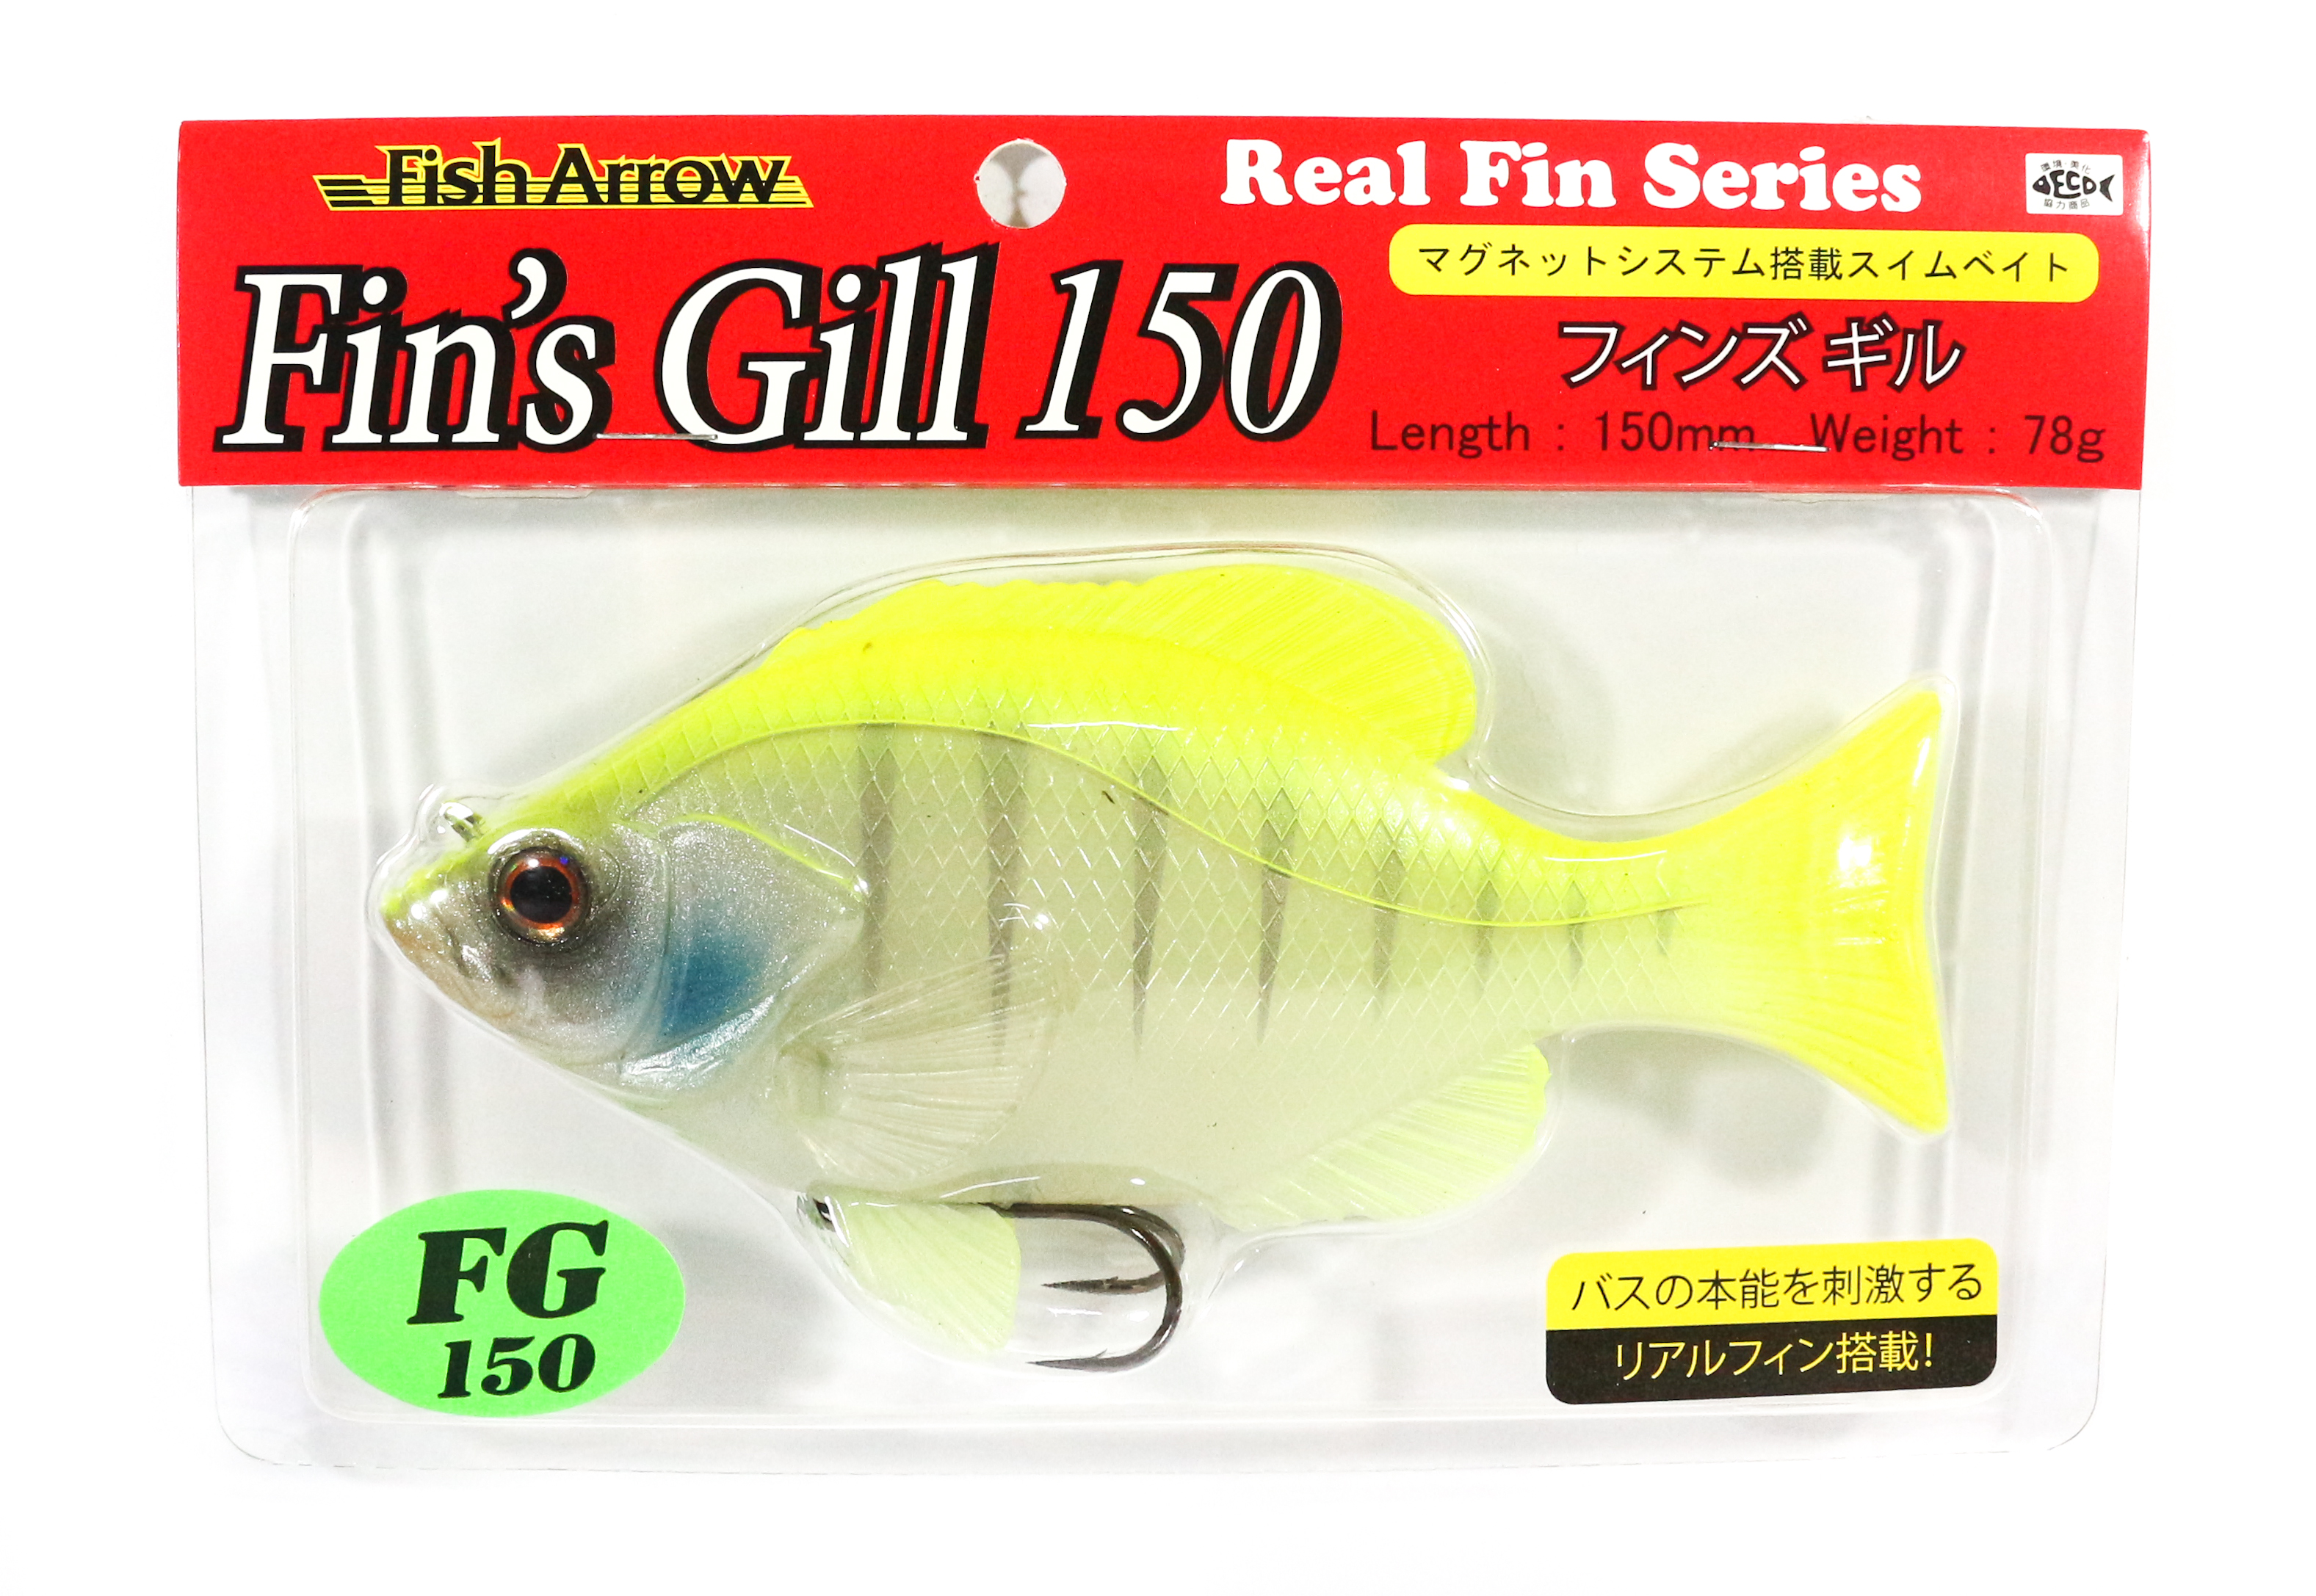 Fish Arrow Soft Lure Fin's Gill 150 78 gram 150 mm Sinking Lure #03 (9525)